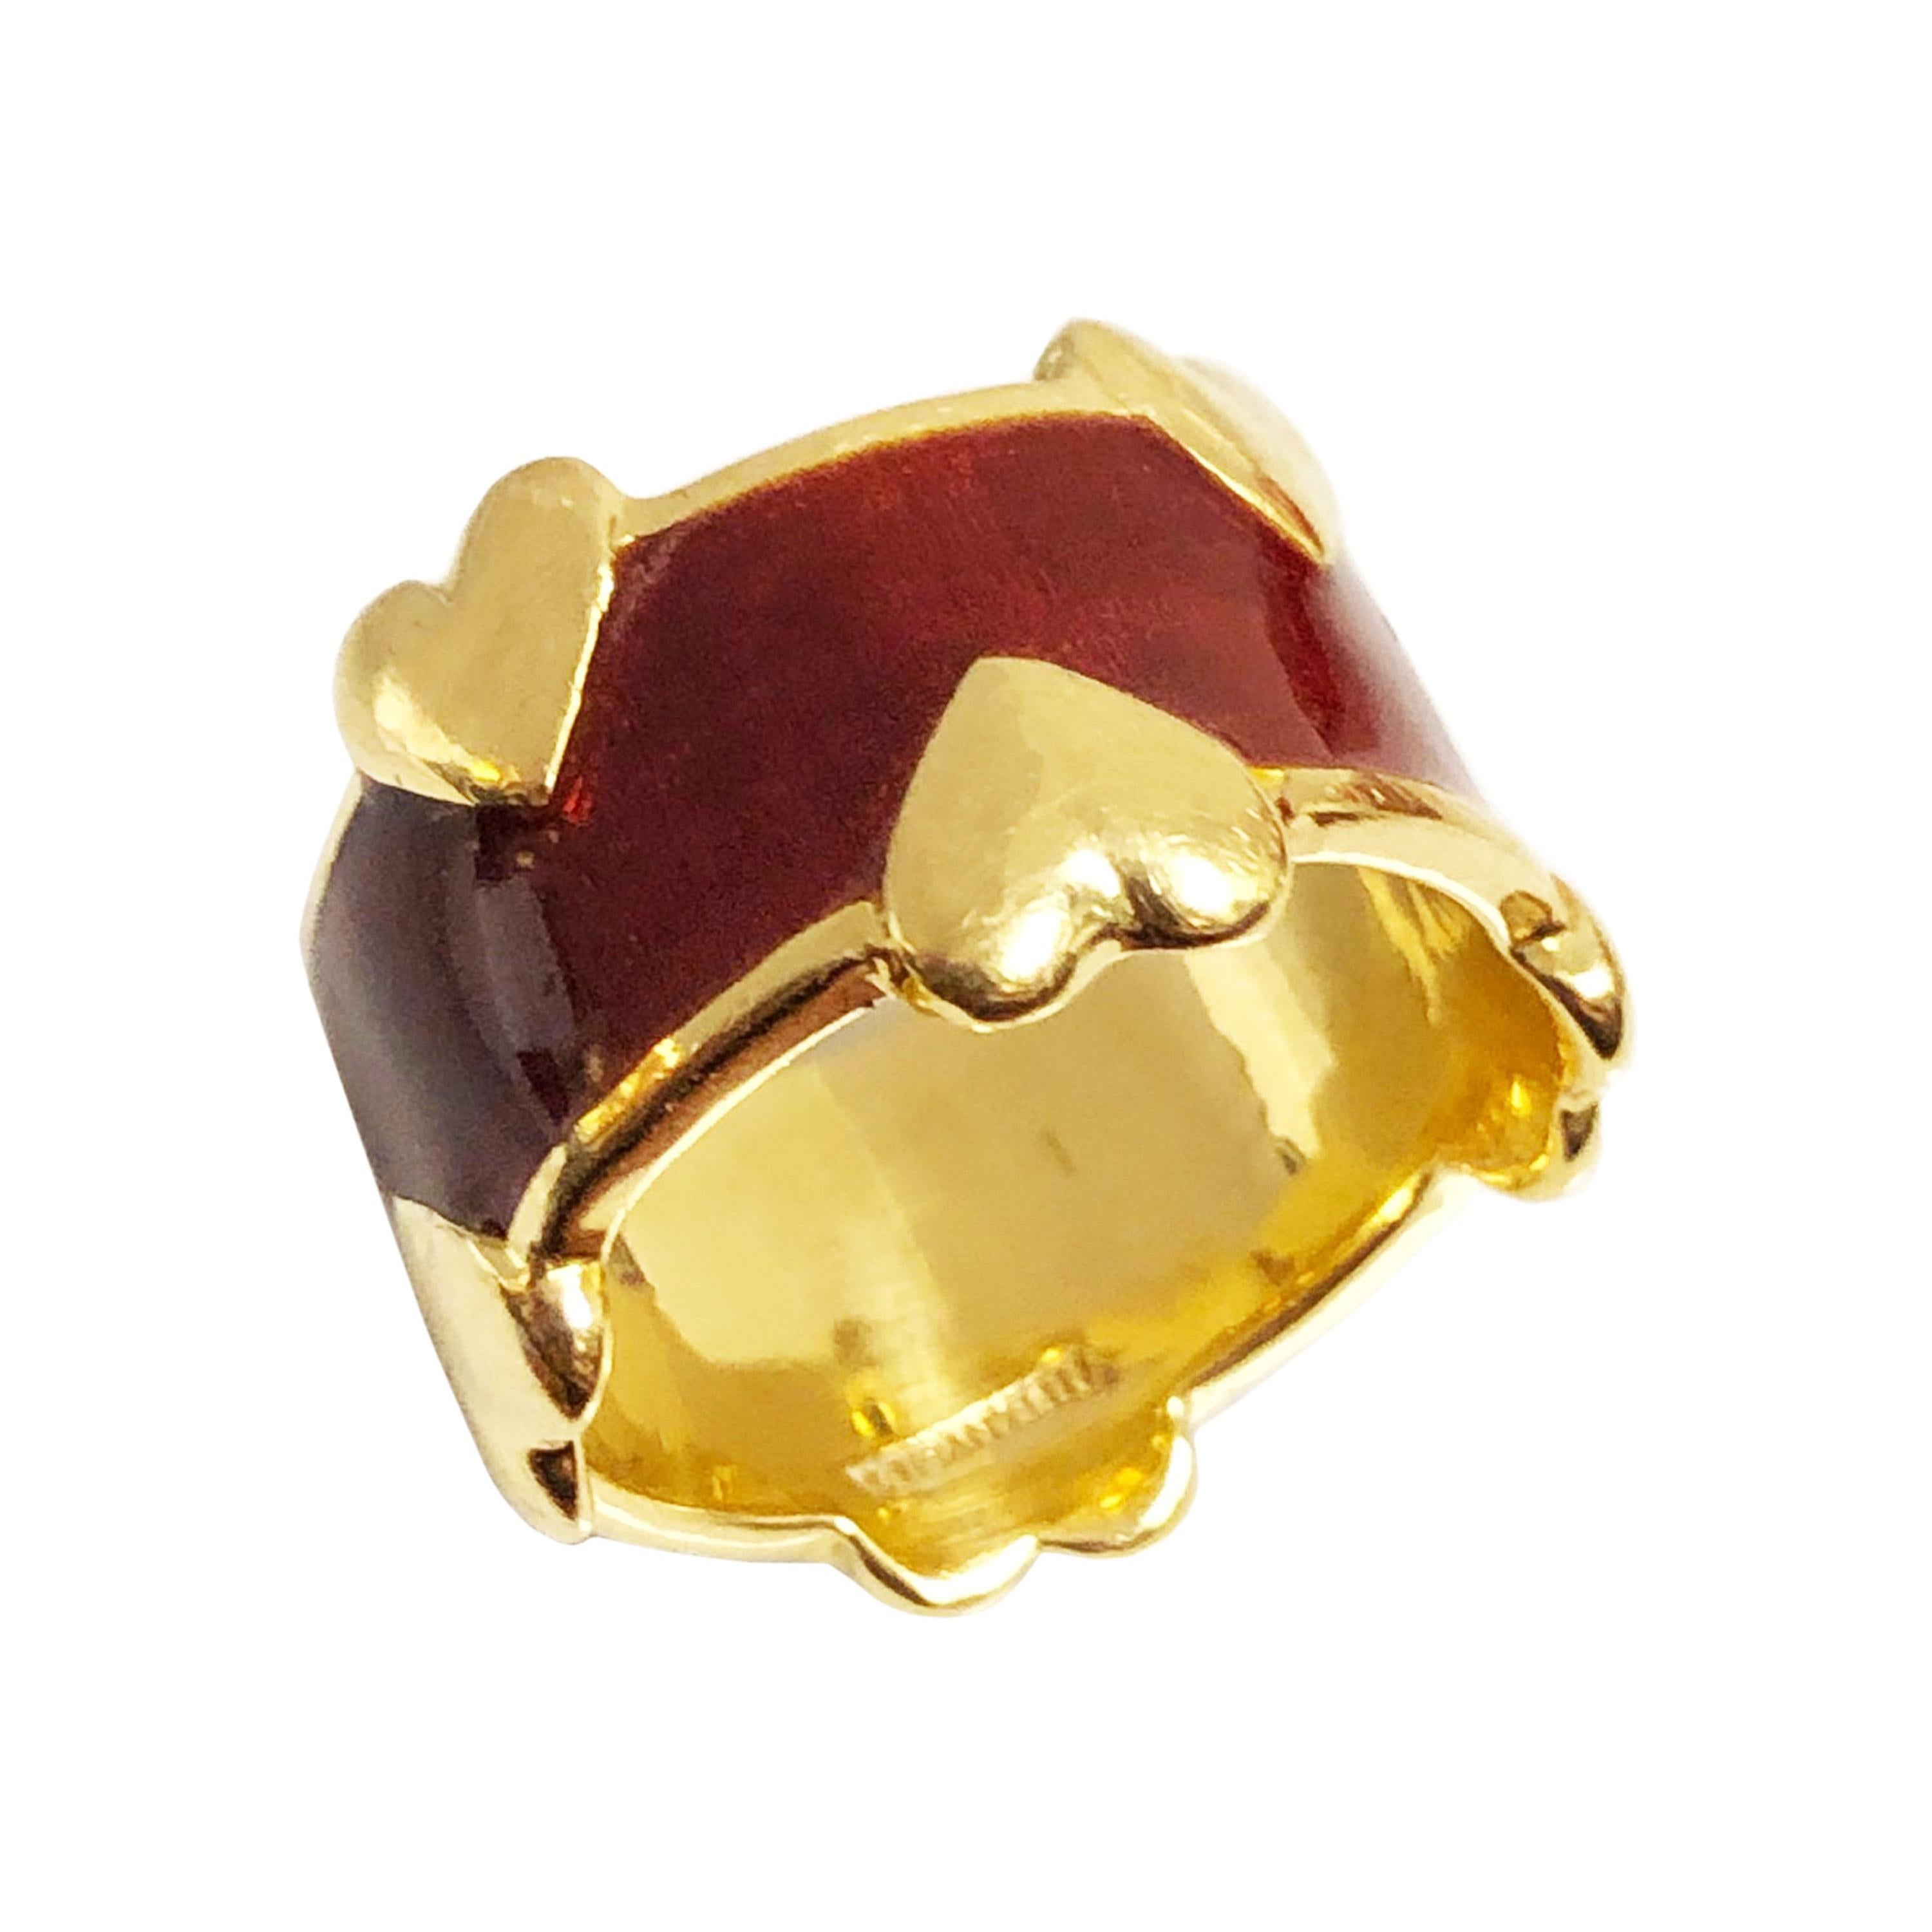 Tiffany & Co. Schlumberger Gold and Enamel Hearts Band Ring